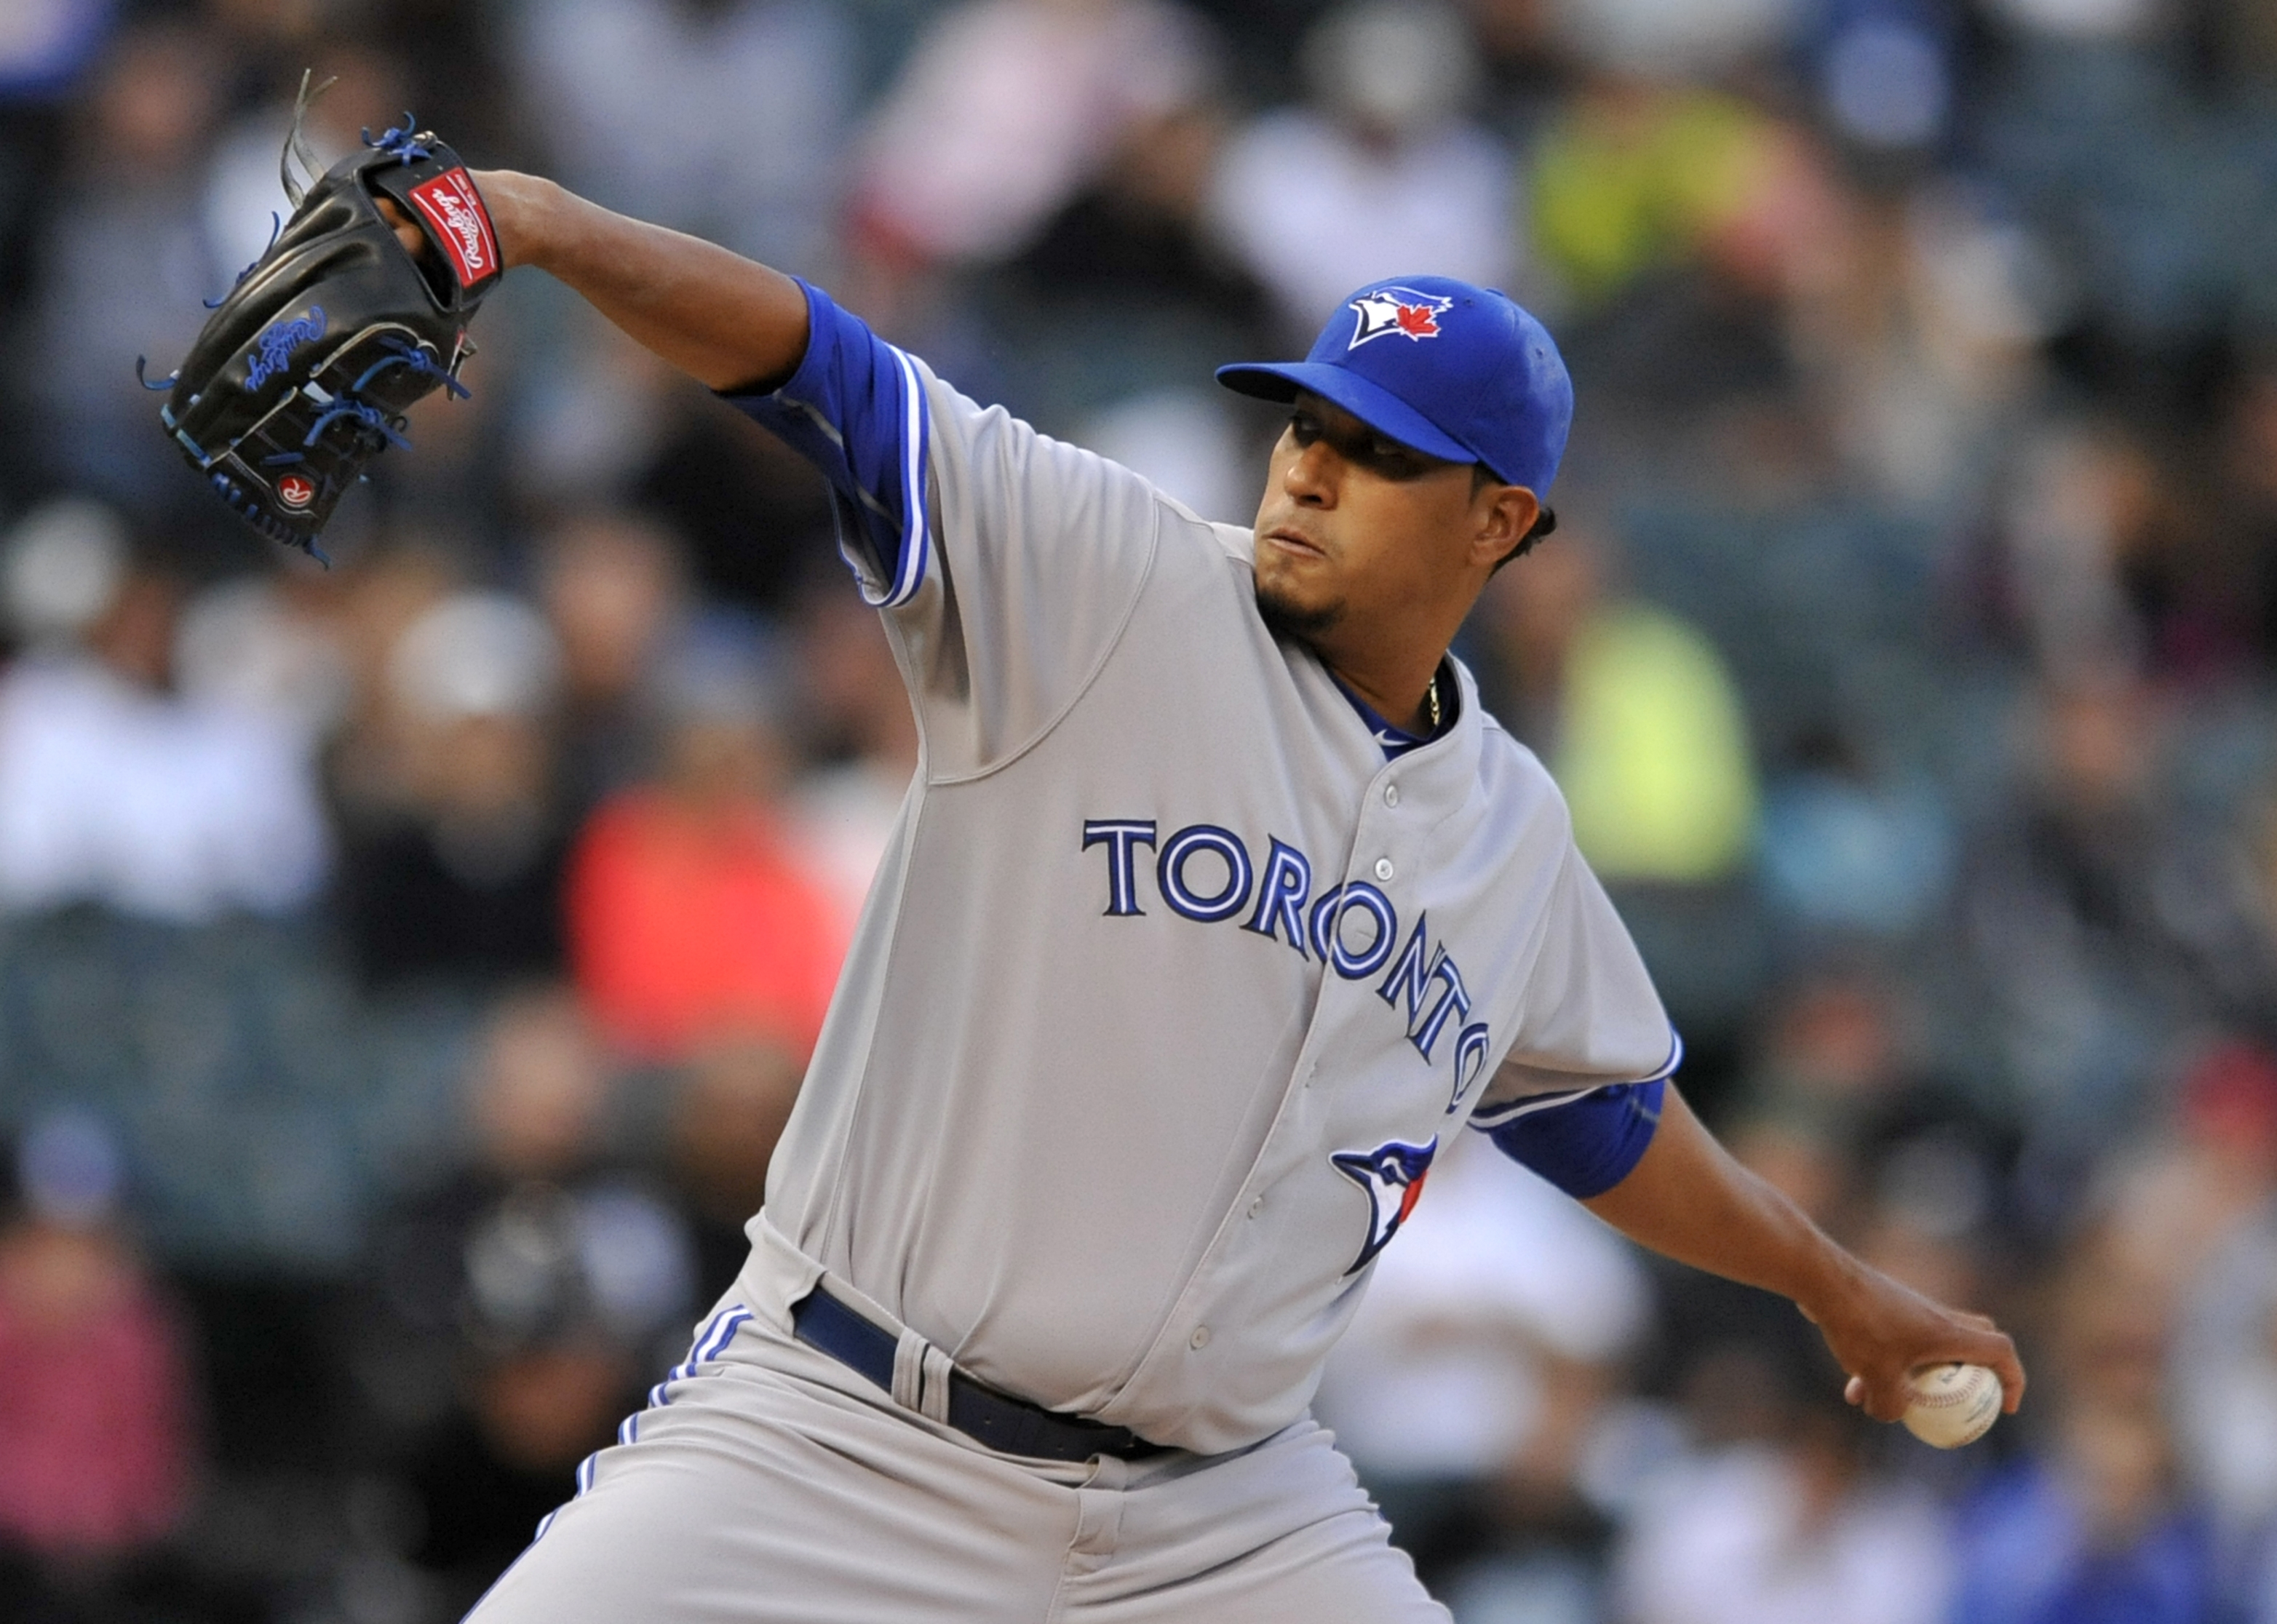 Toronto Blue Jays starter Felix Doubront (57), delivers a pitch during the first inning of a baseball game against the Chicago White Sox Tuesday, July 7, 2015, in Chicago. (AP Photo/Paul Beaty)